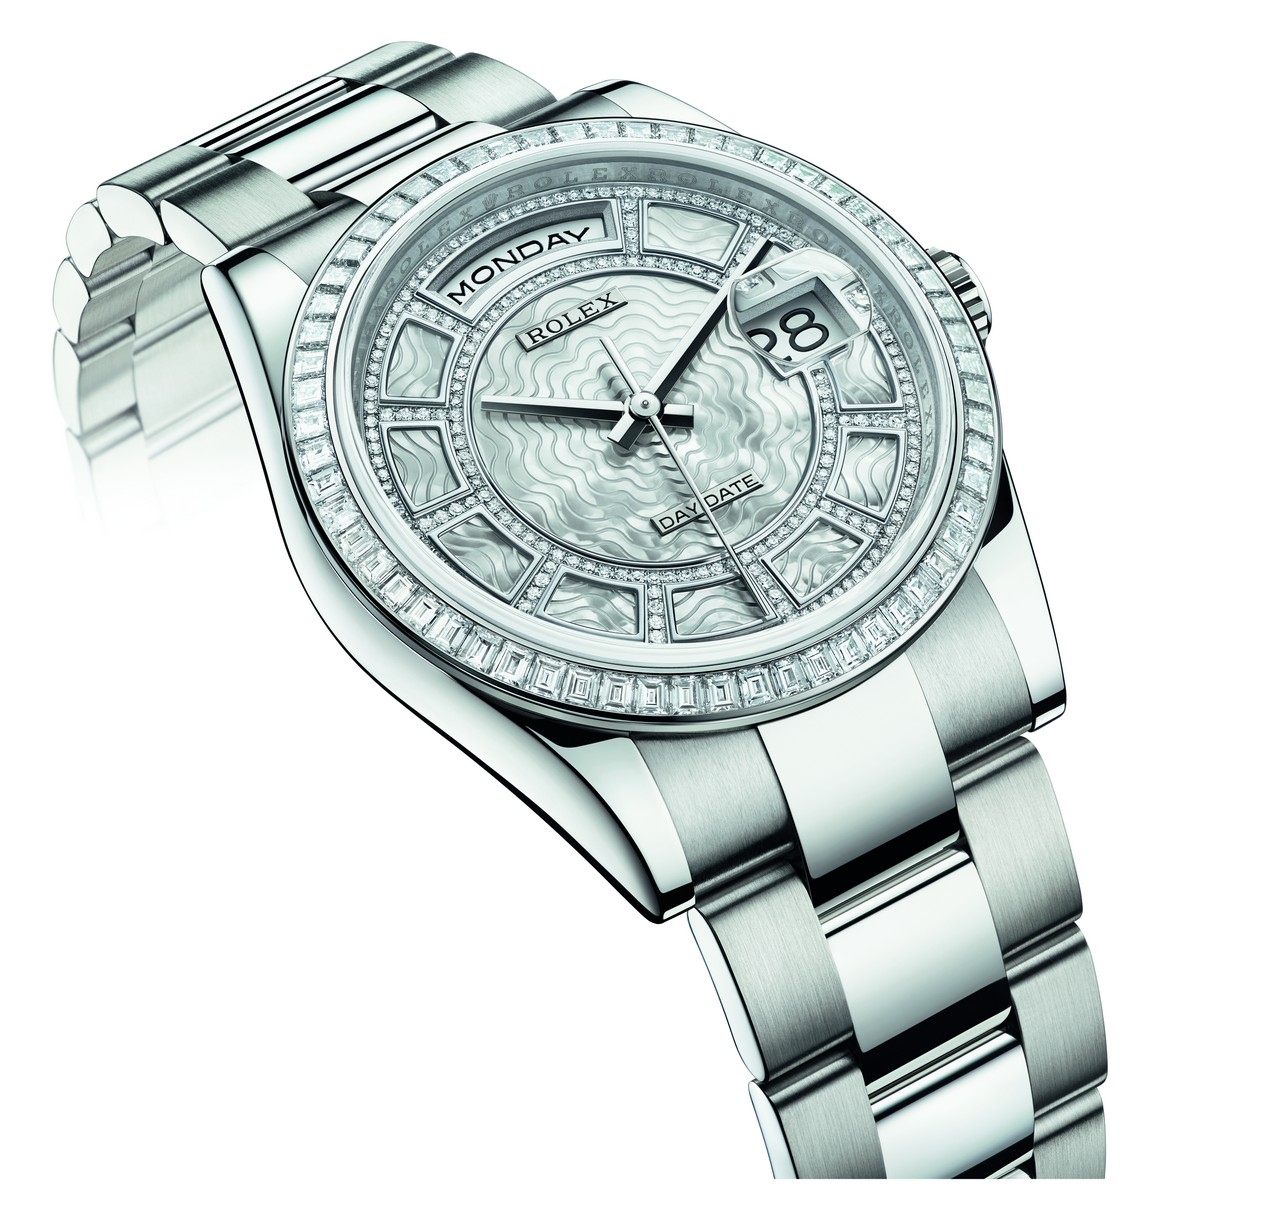 baselworld-2013-oyster-perpetual-day-date-sertie_0-100_7